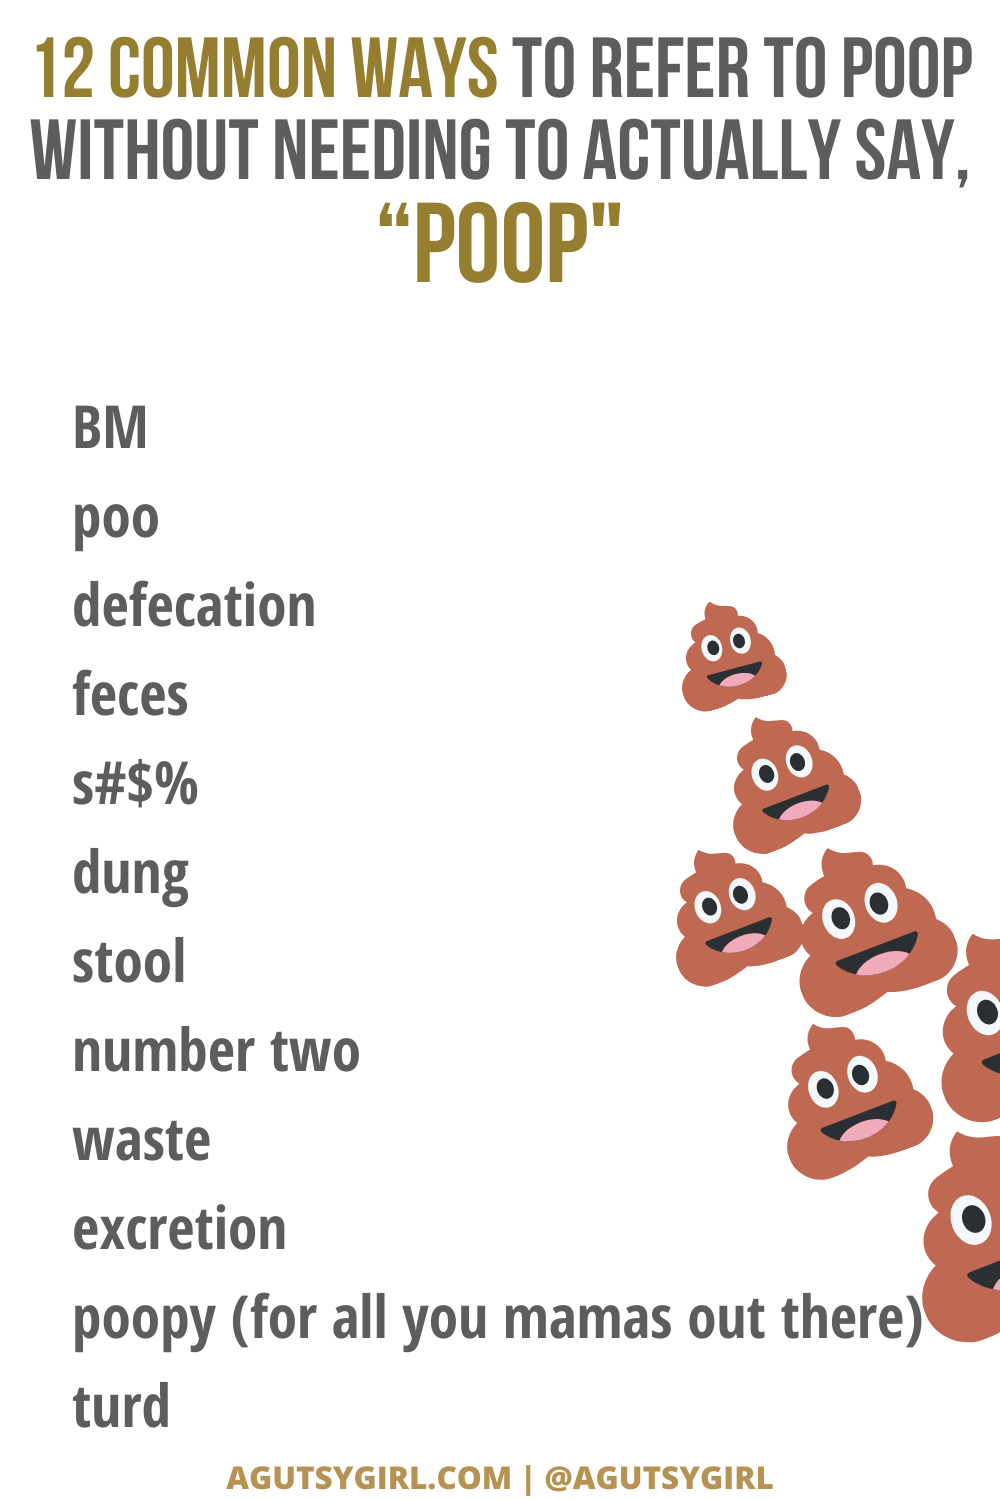 12 common ways to refer to poop without saying pooping agutsygirl.com #poop #pooping #bowelmovement #guthealth